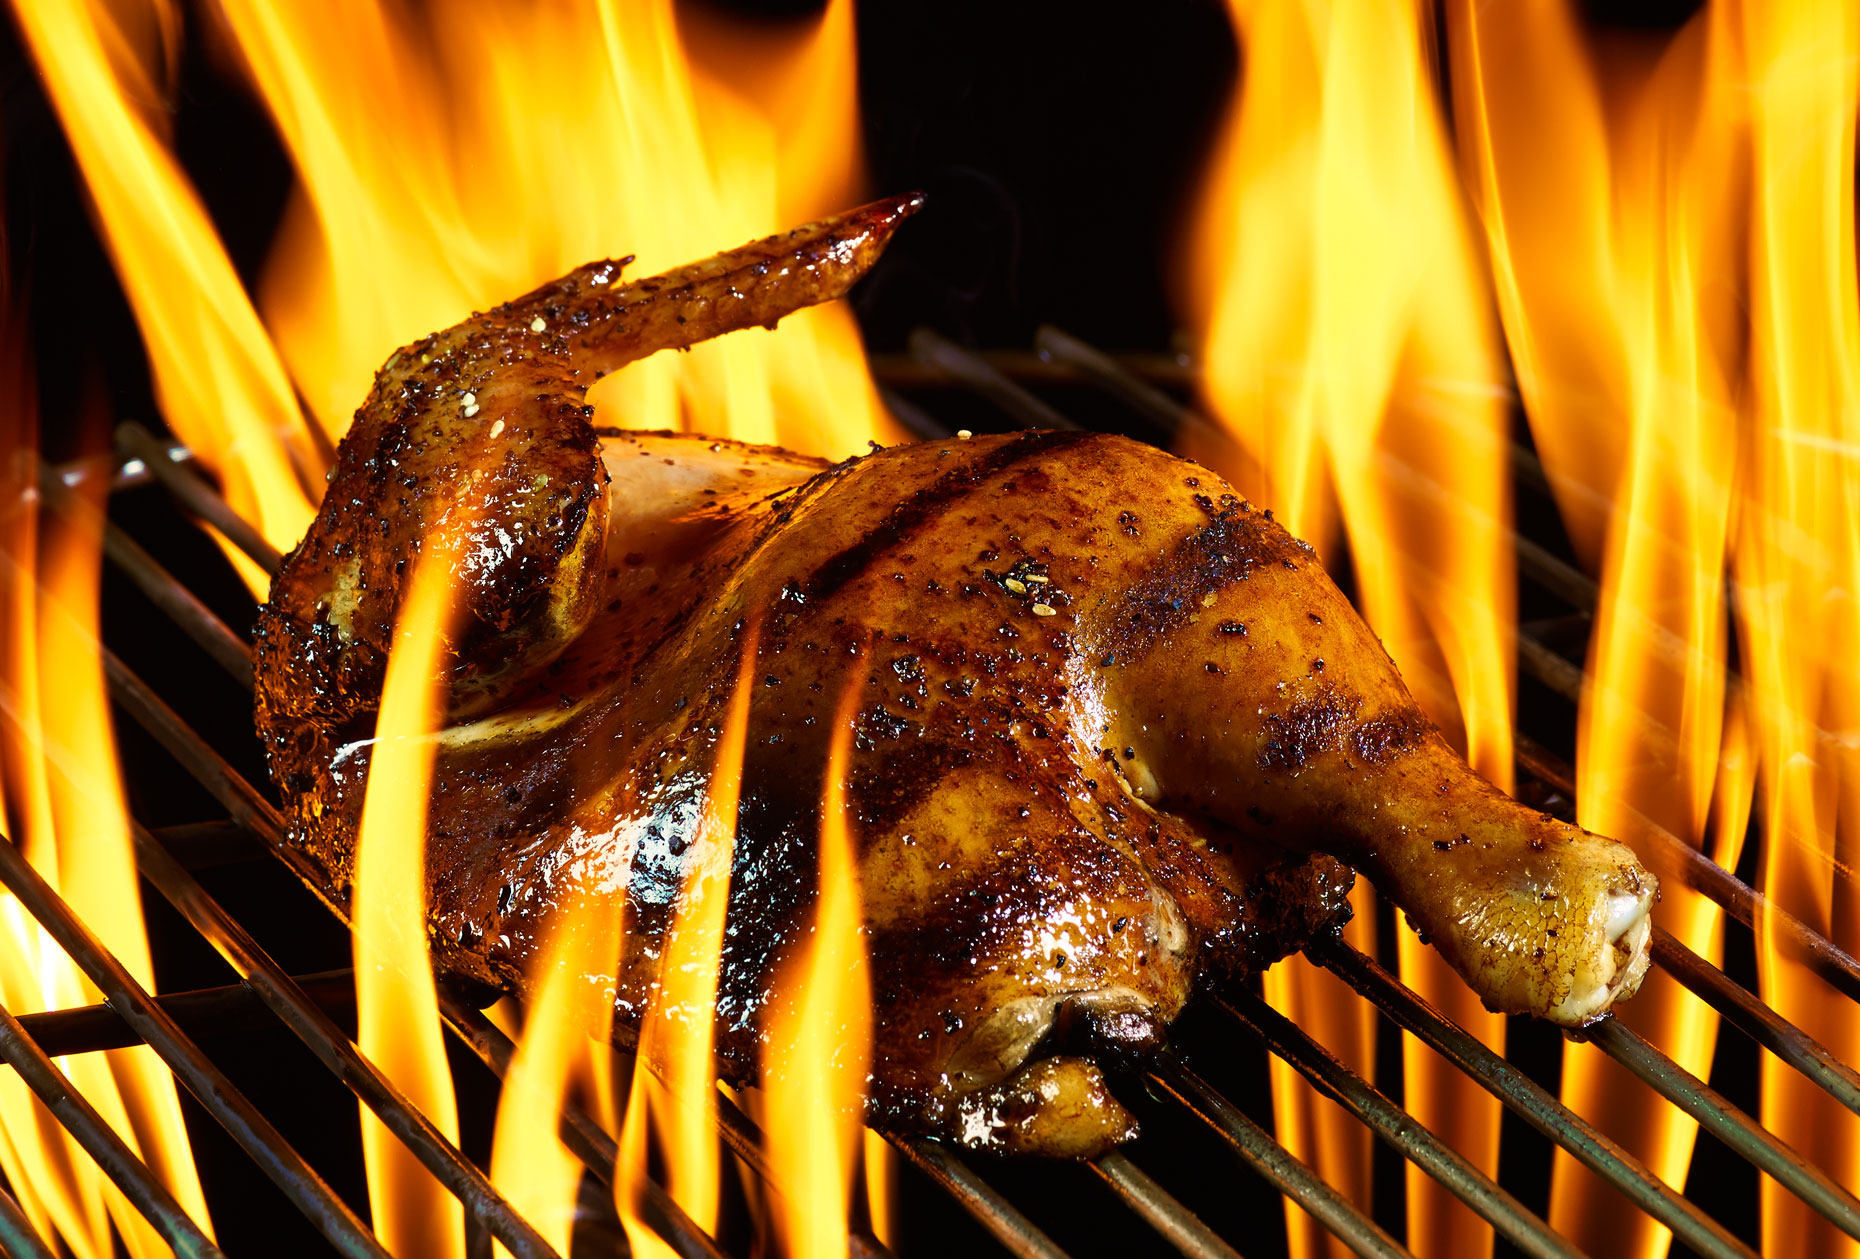 Food Photography | Chicken in Fire